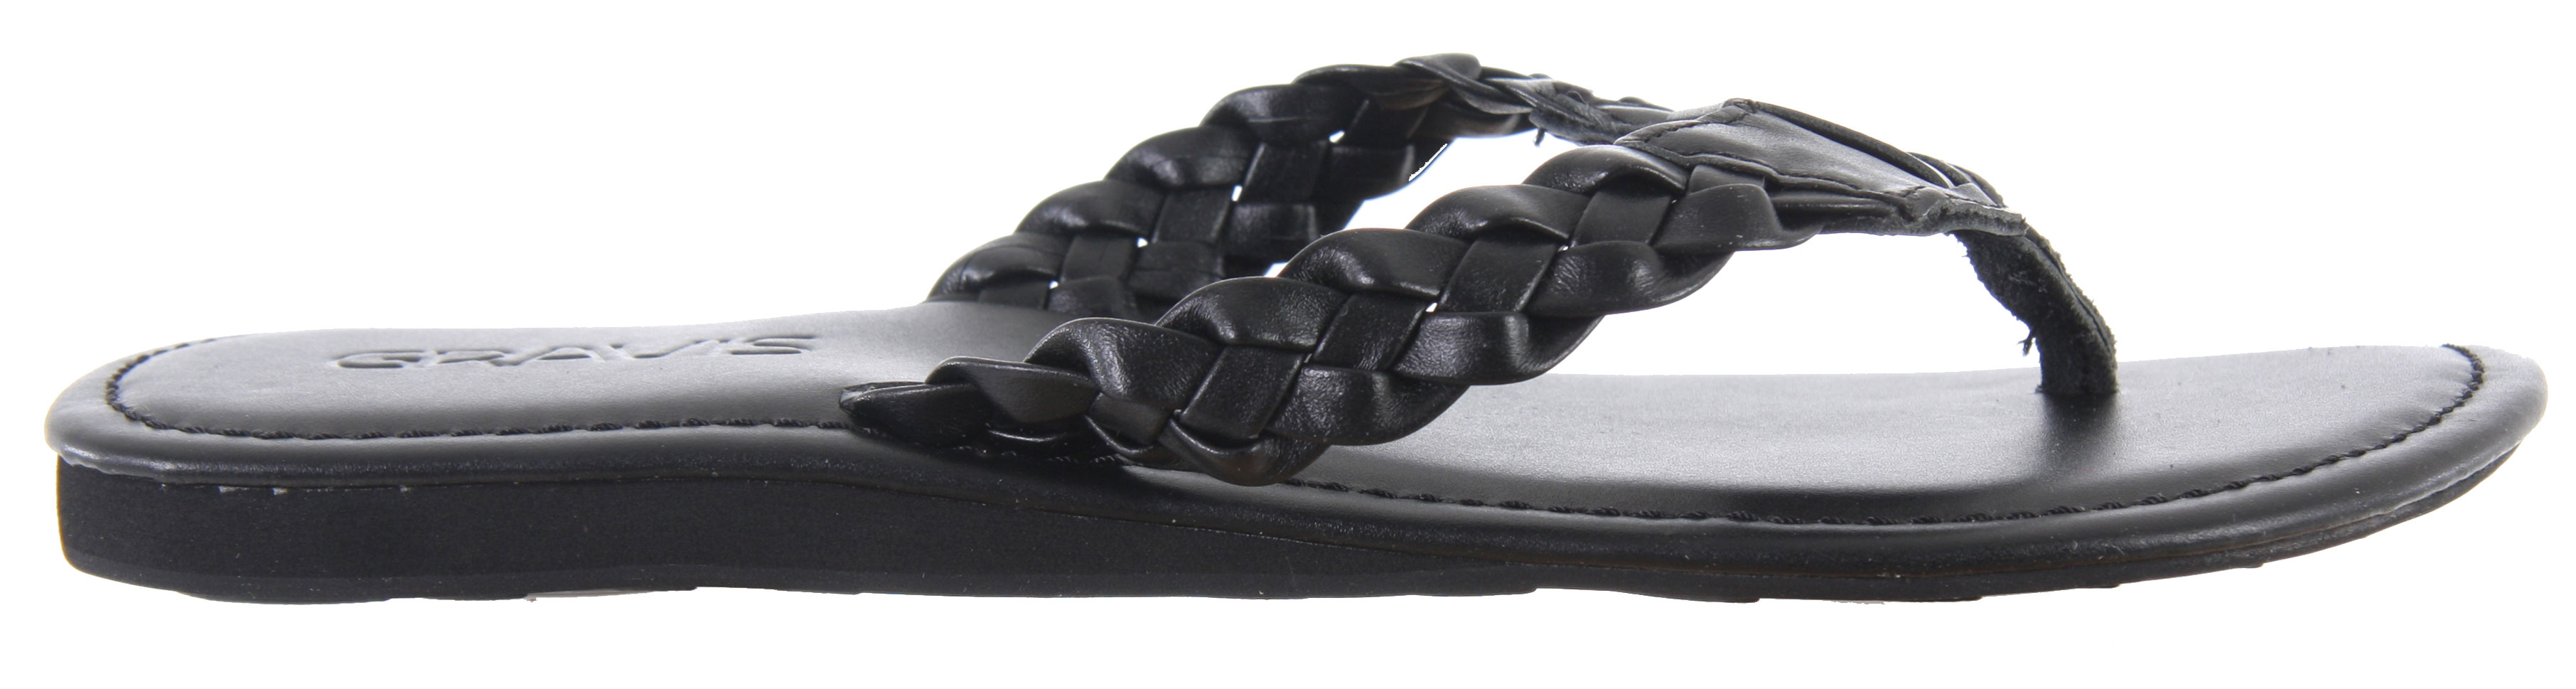 Surf Add a bit of femininity to your outfit by rocking these Gravis Athena Sandals. Featuring a braided strap detail, instantly add glam and character to your look. With its slender design, these sandals will compliment all your summer dresses. With a soft footbed and durable soles, be sure to feel comfortable and confident all season long.Key Features of the Gravis Athena Sandals: Braided strap detail with added Gravis logo Arch support Slender design EVA cushioning in midsole. Durable synthetic outsole - $8.95